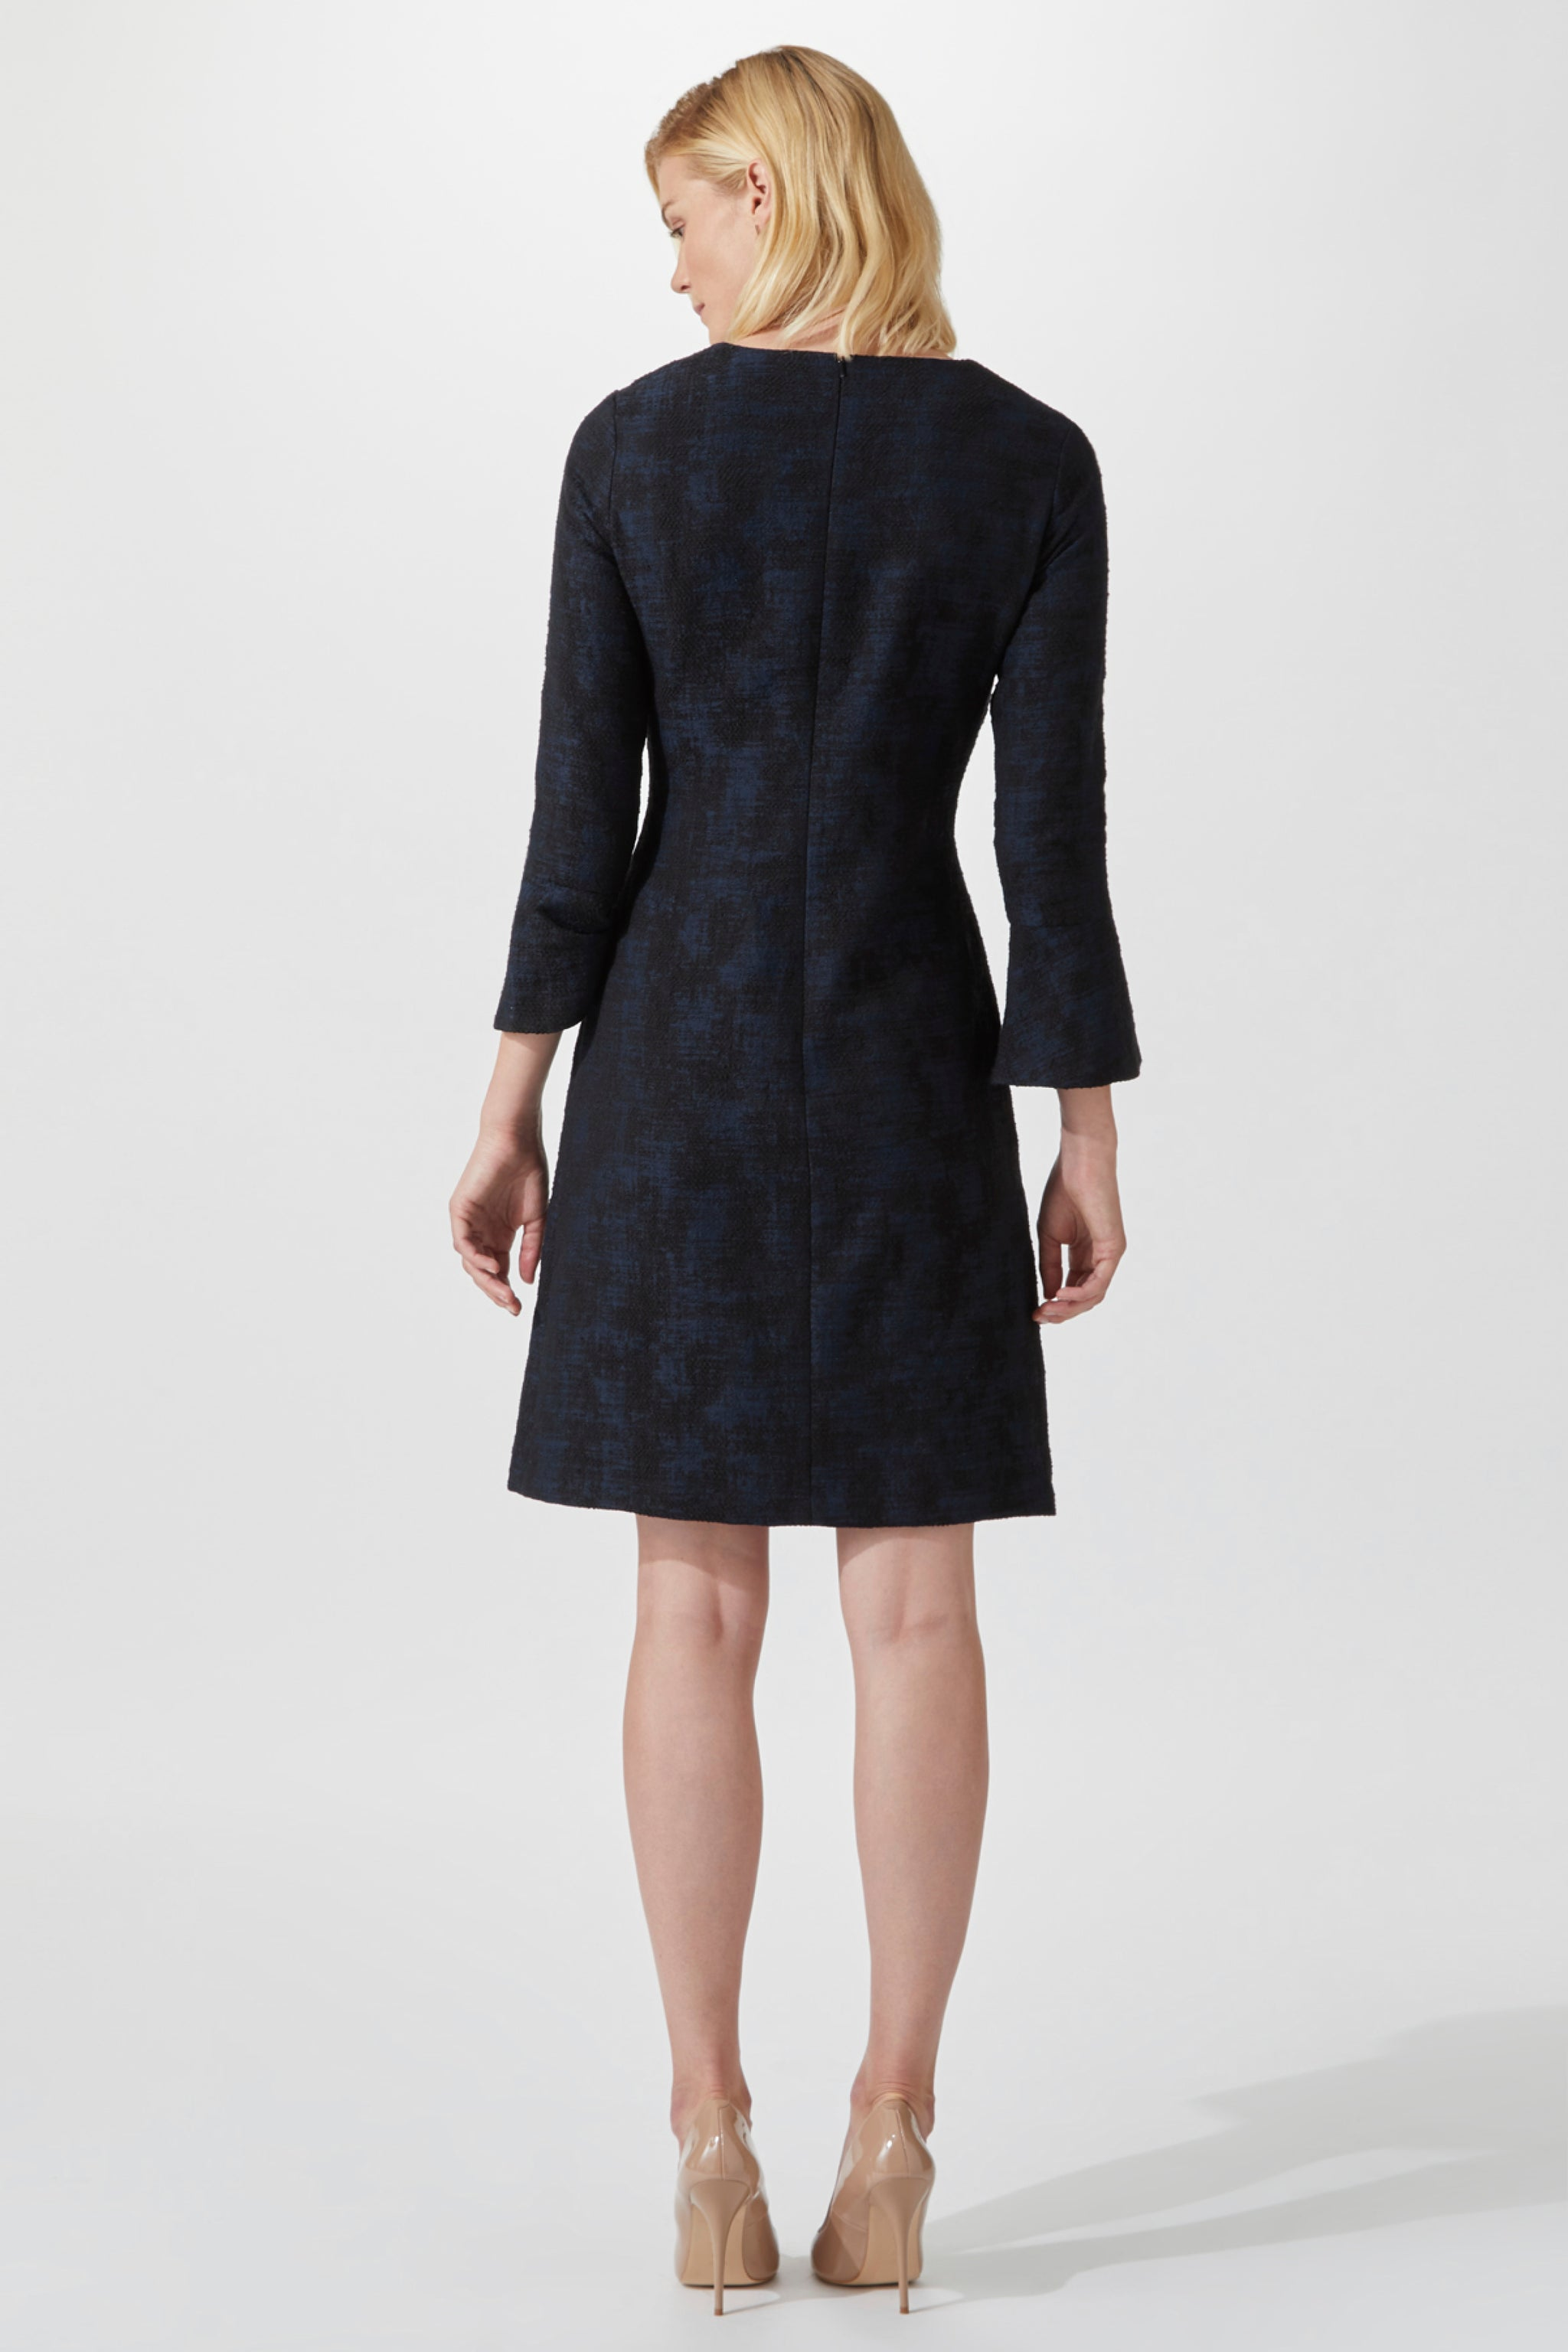 Windsor Navy Jacquard Dress